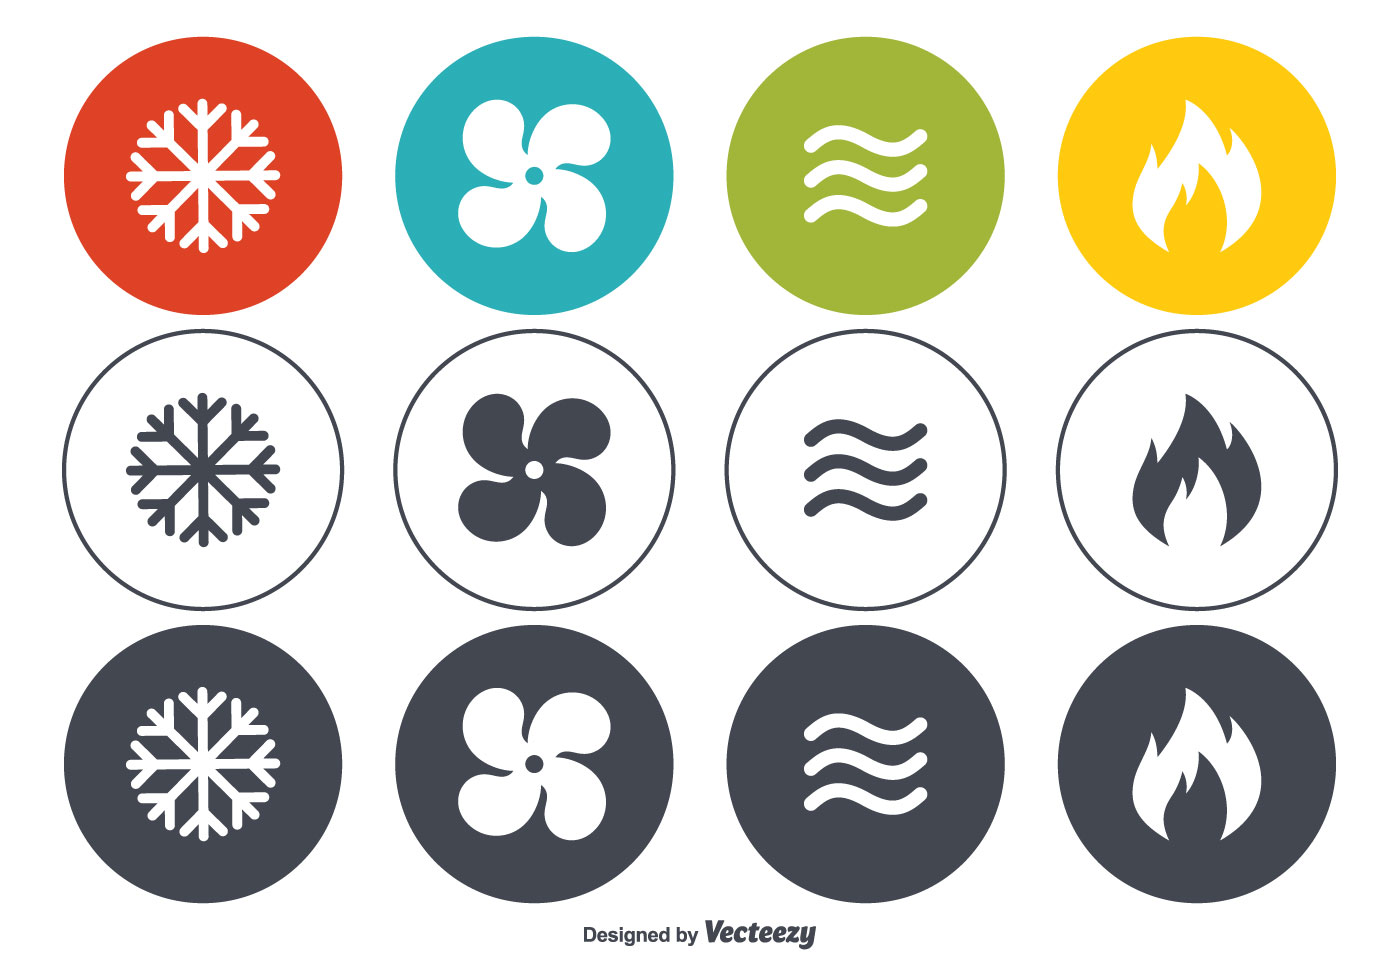 Hvac Vector Icon Set Download Free Art Stock Graphics Images Wiring Diagram Symbols Stencils